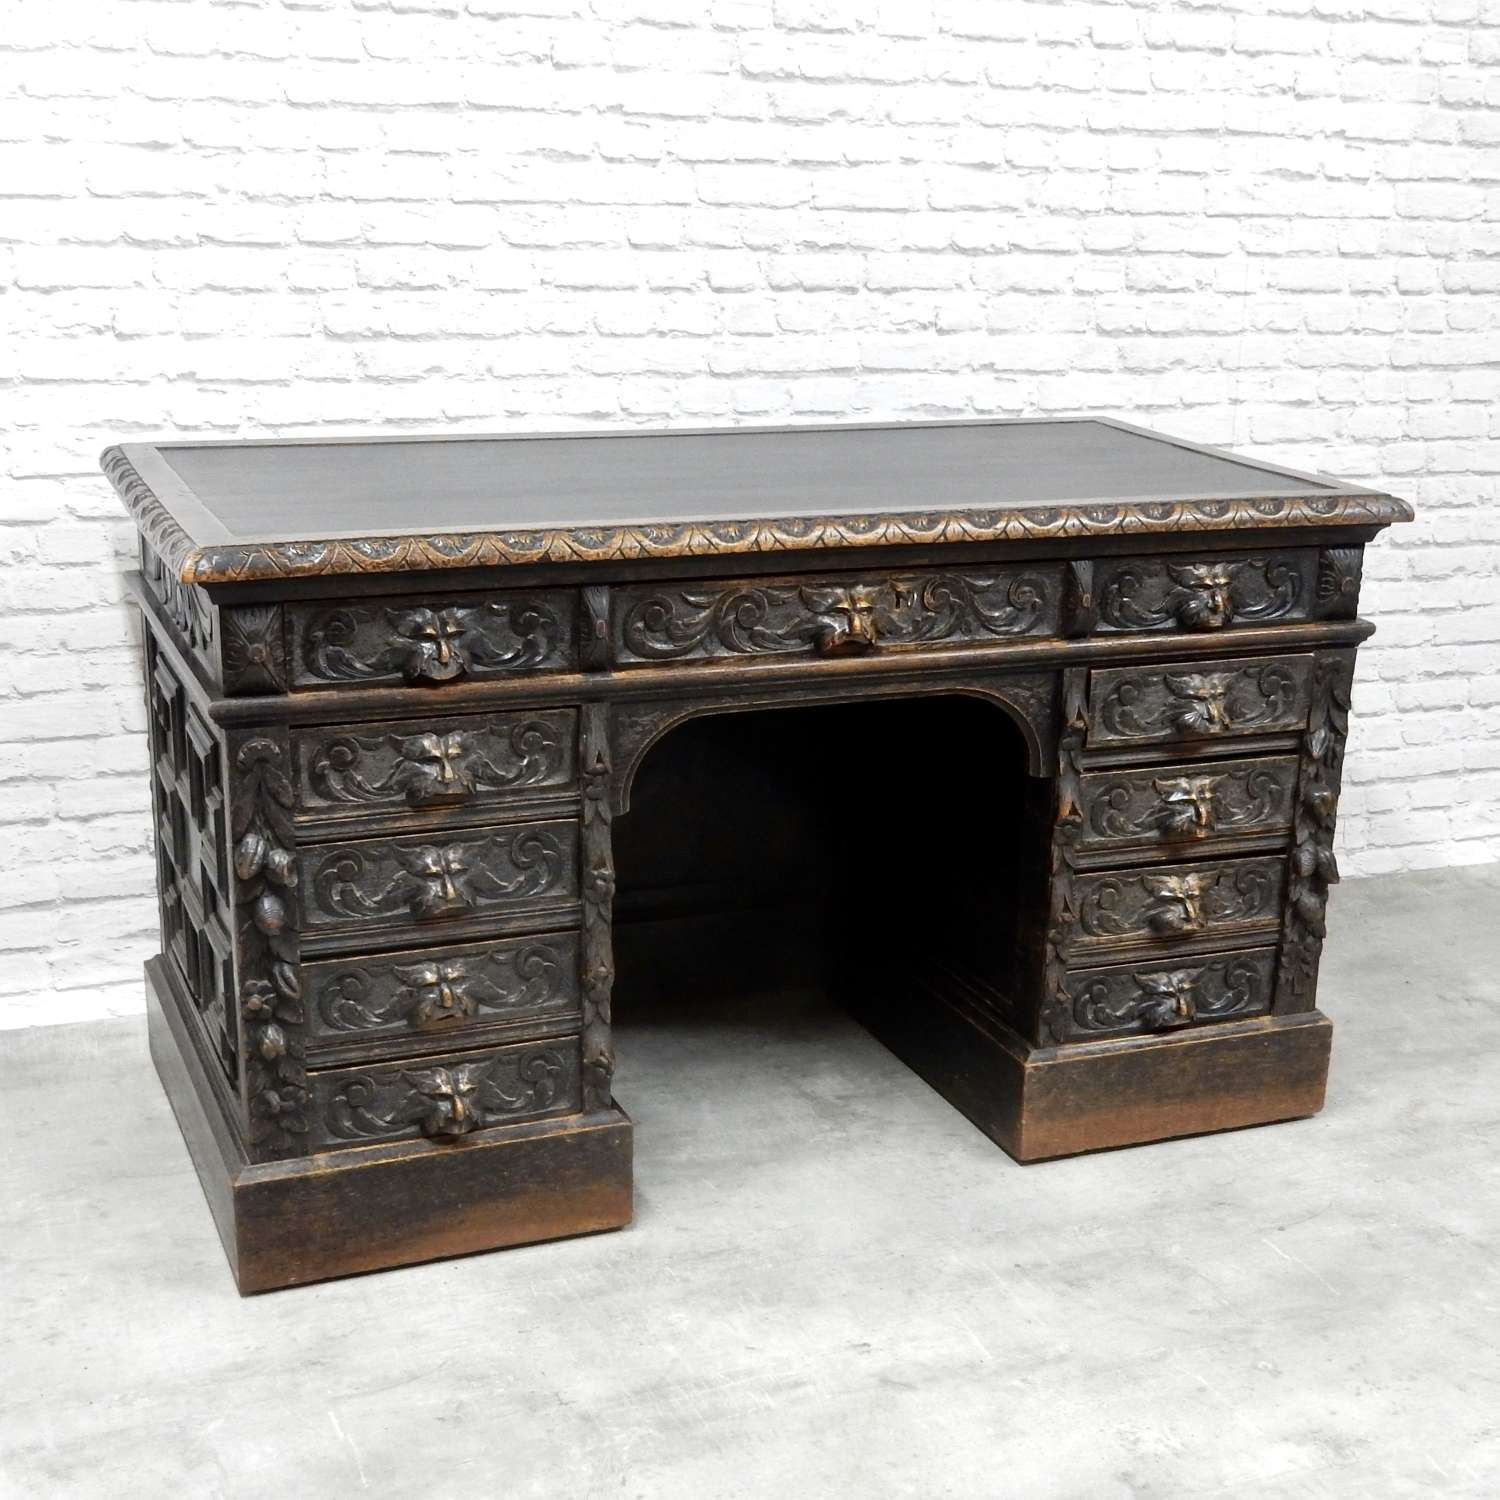 C19th Oak Greenman Pedestal desk